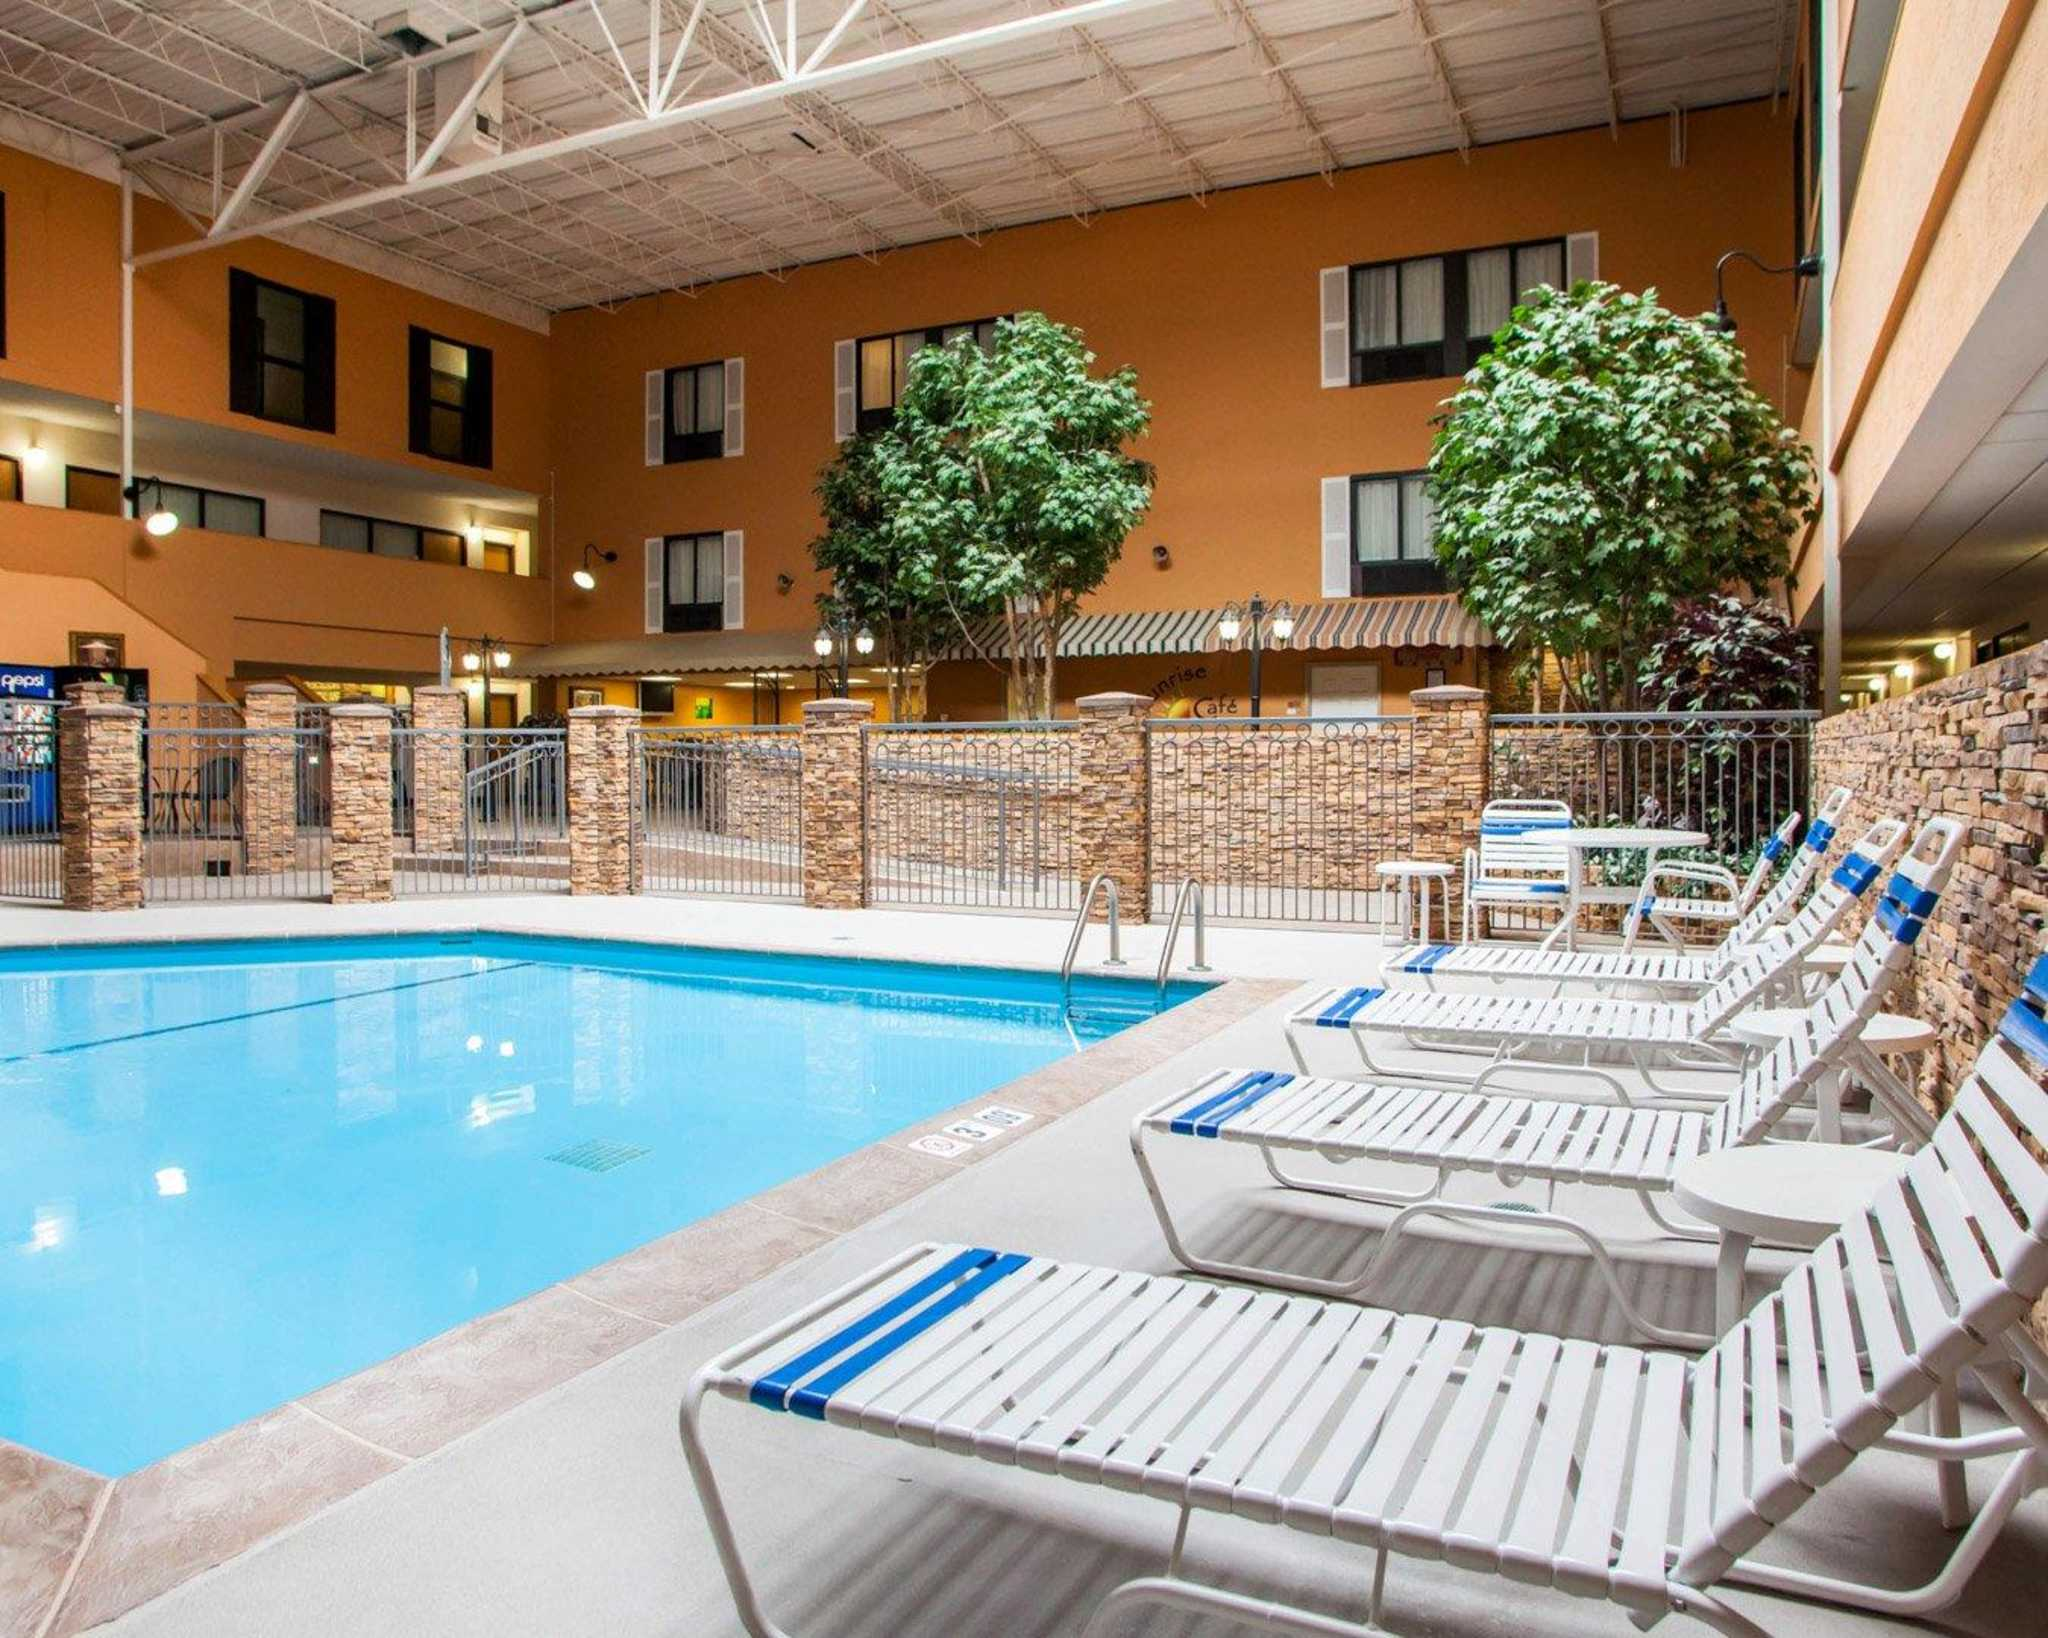 Quality Inn and Suites Starlite Village Conference Center Ames UnitedStates